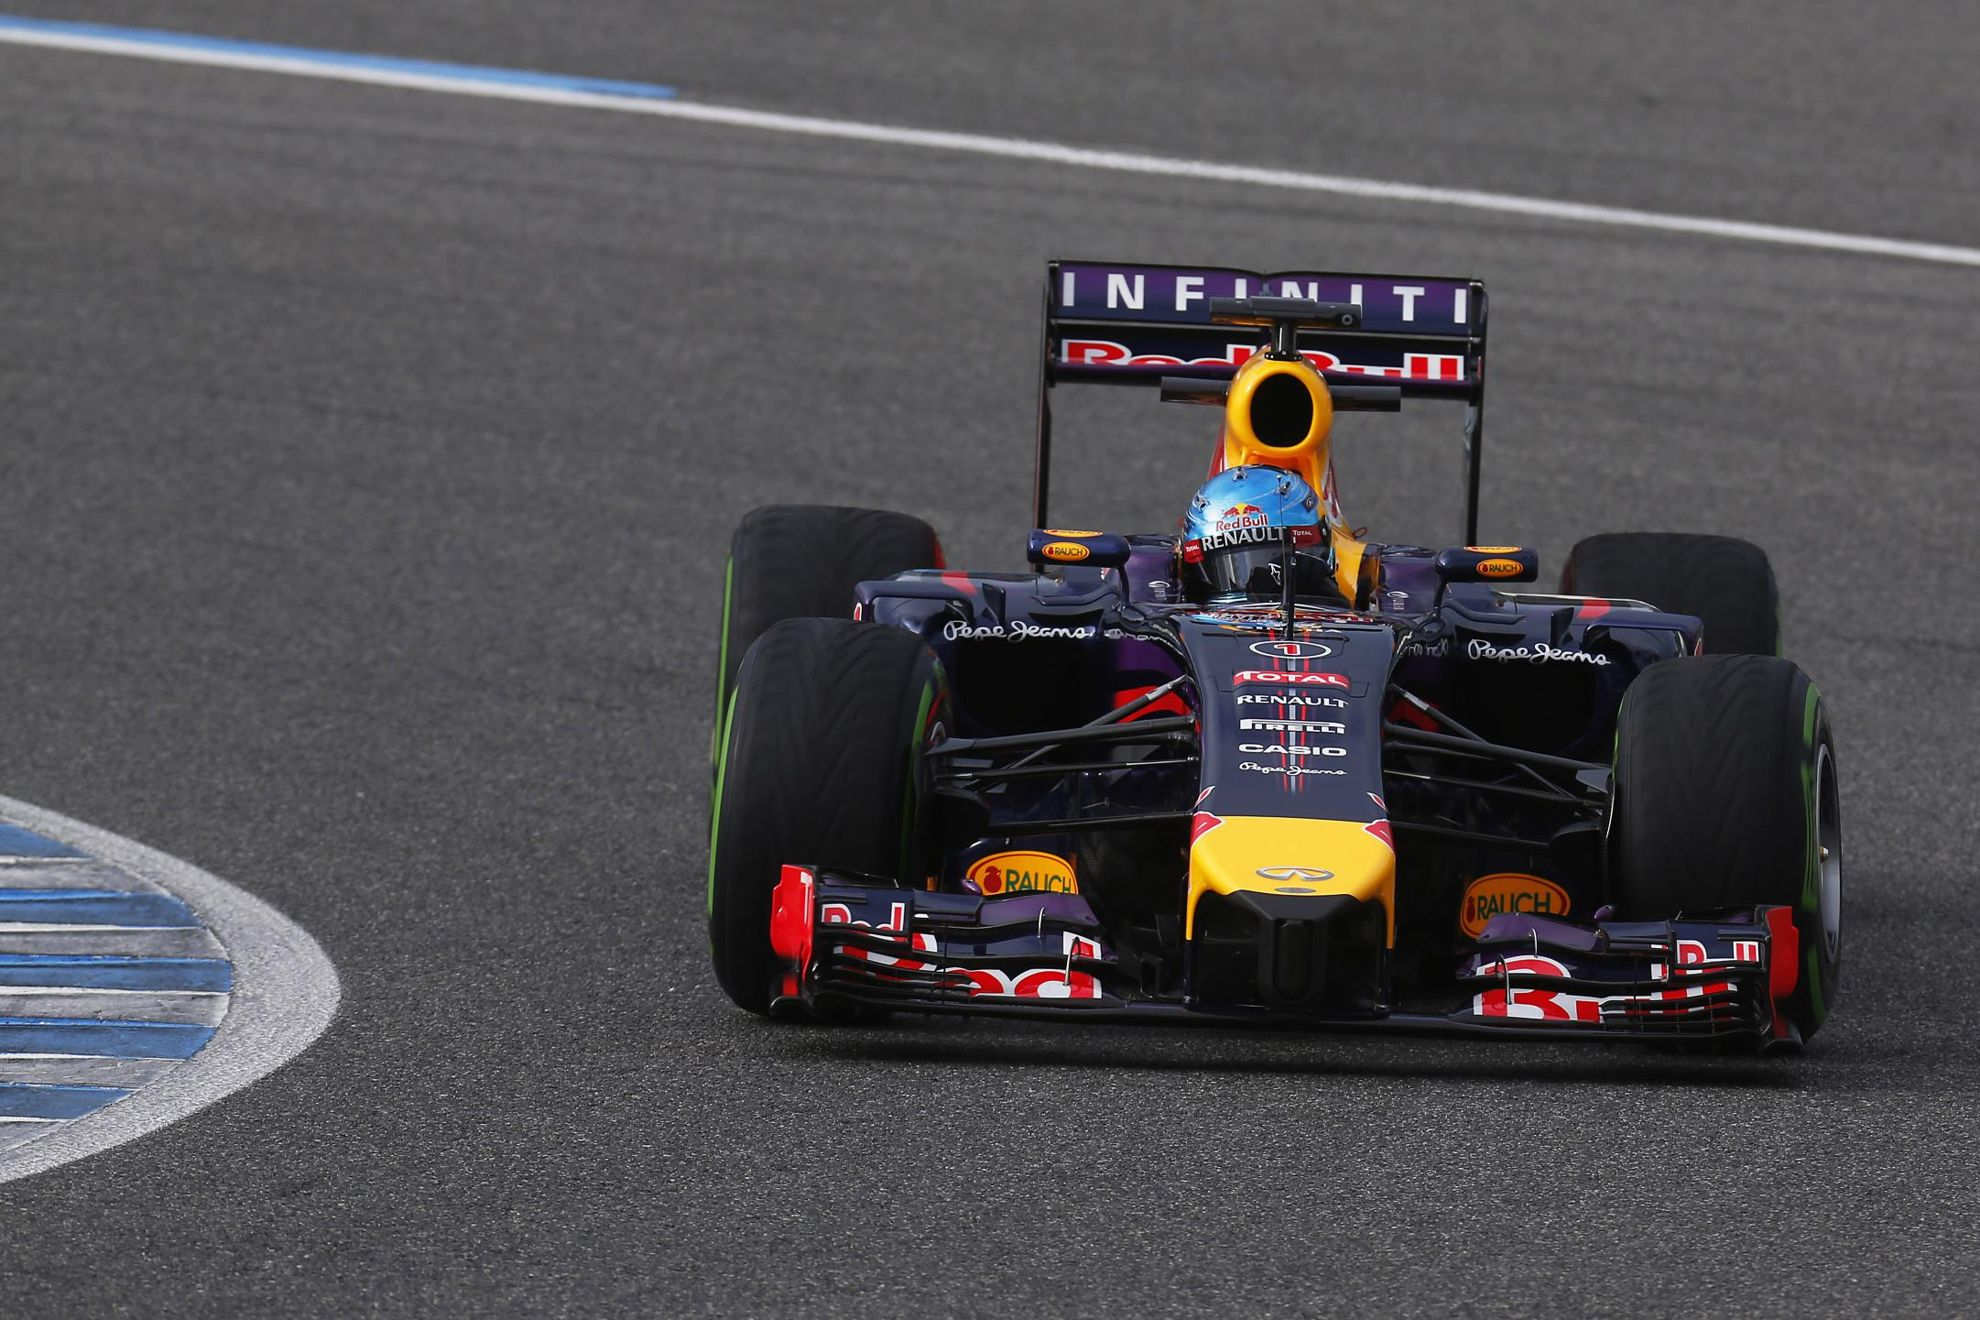 Infiniti_Formula_One_Racing_Car_